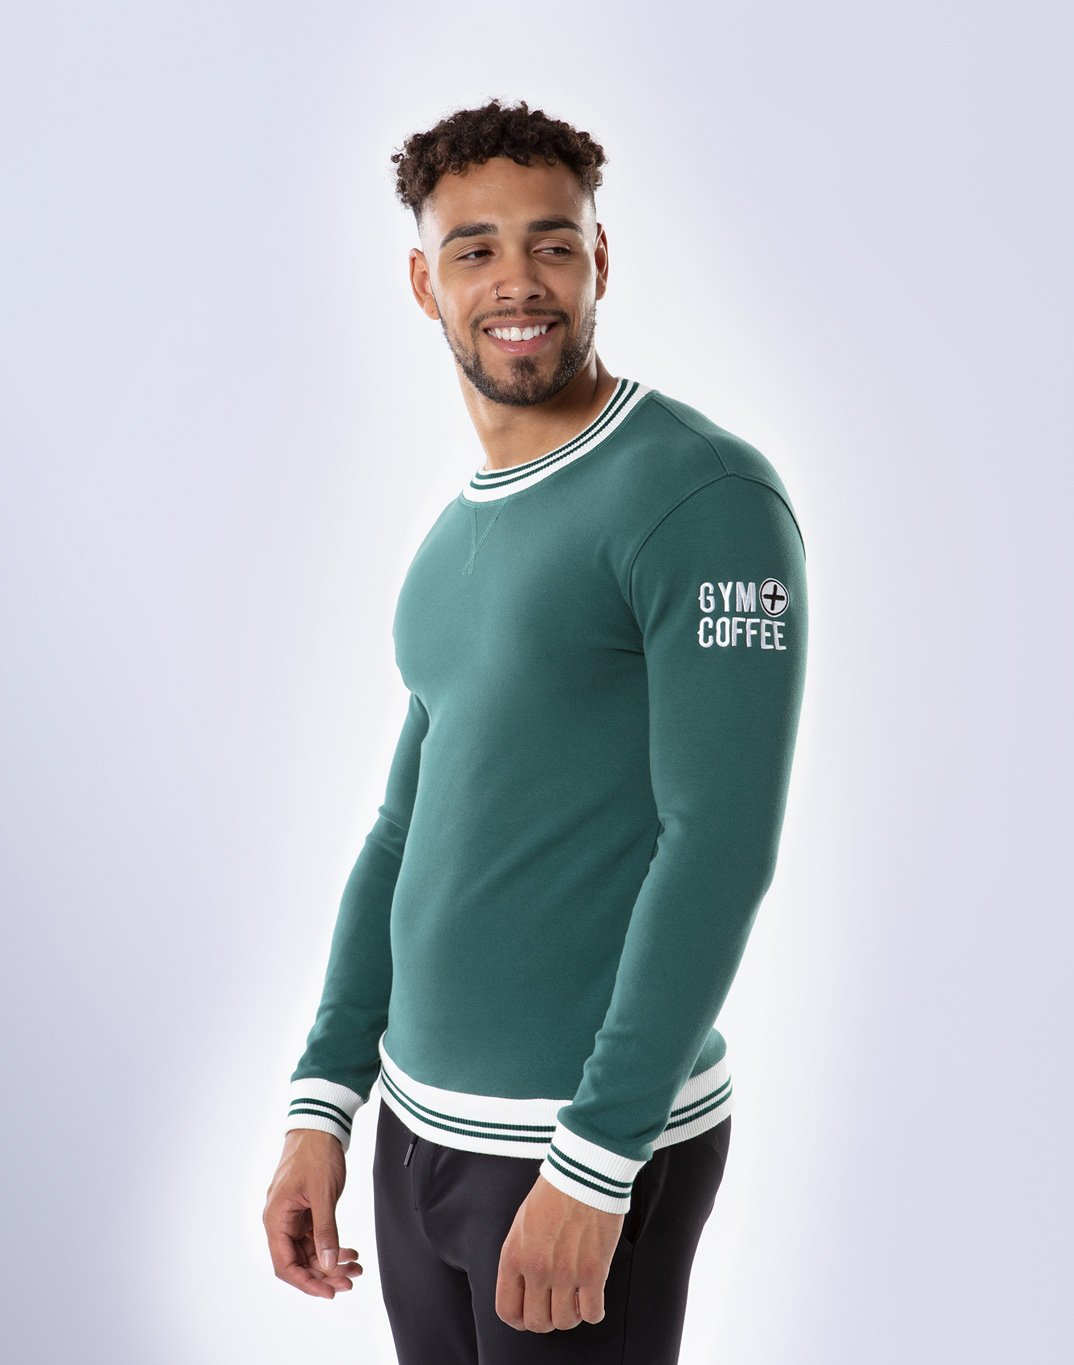 Gym Plus Coffee Long Sleeve Retro UniCrew in Hunter Green Designed in Ireland